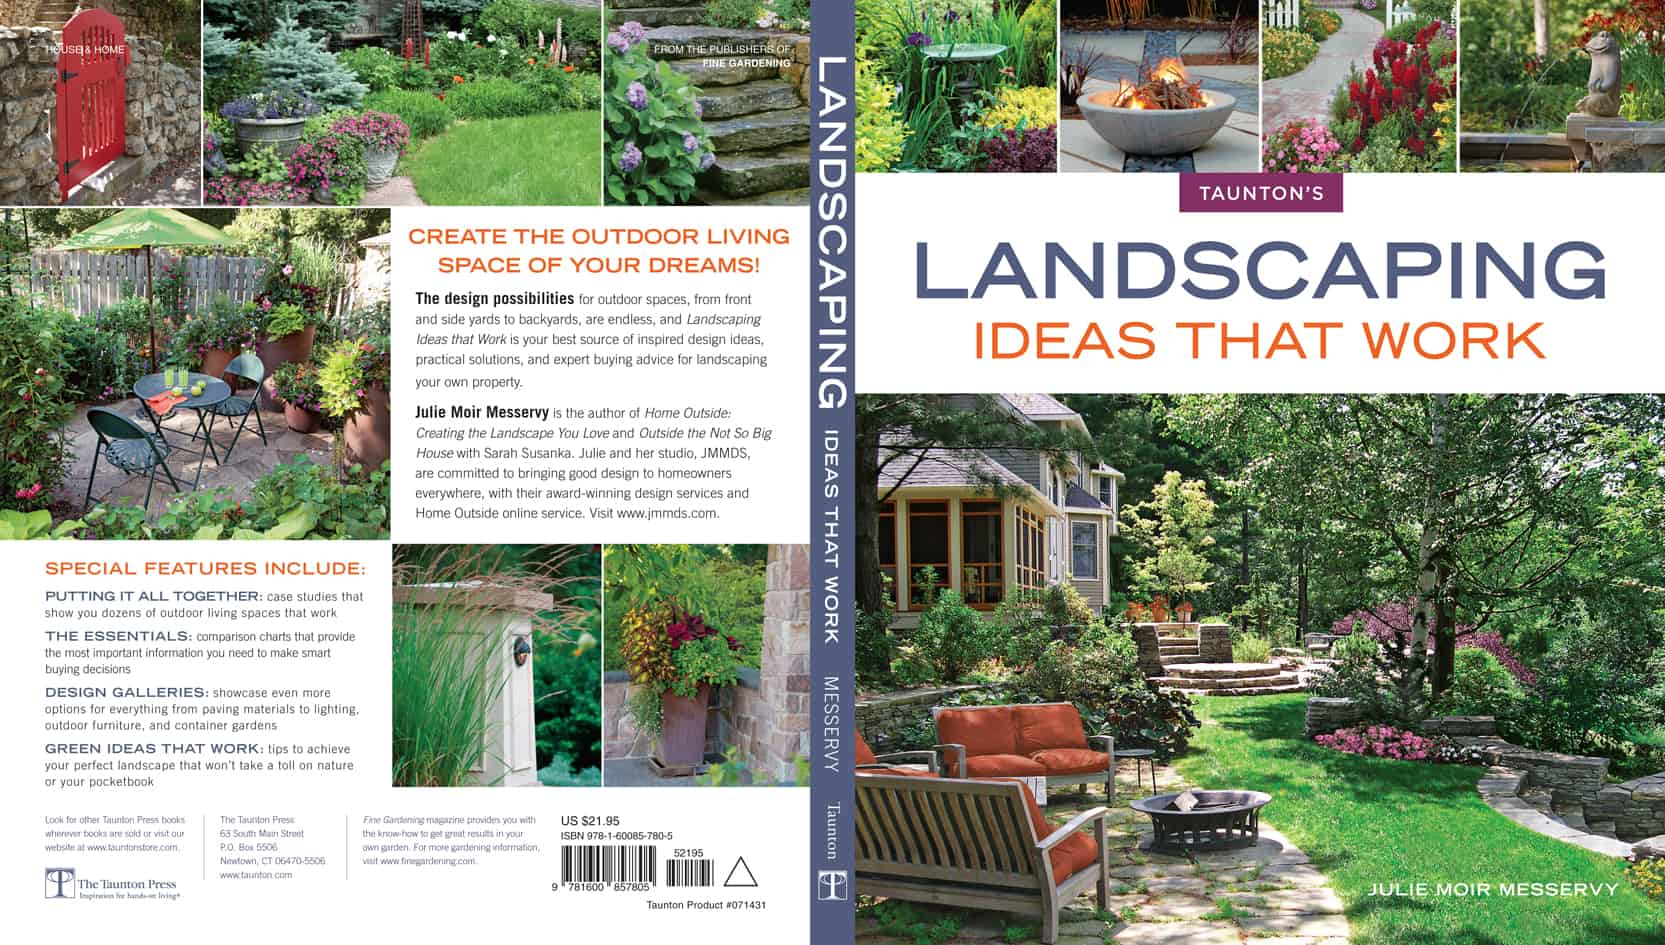 Julie moir messervy design studio landscaping ideas that for Garden design workbook